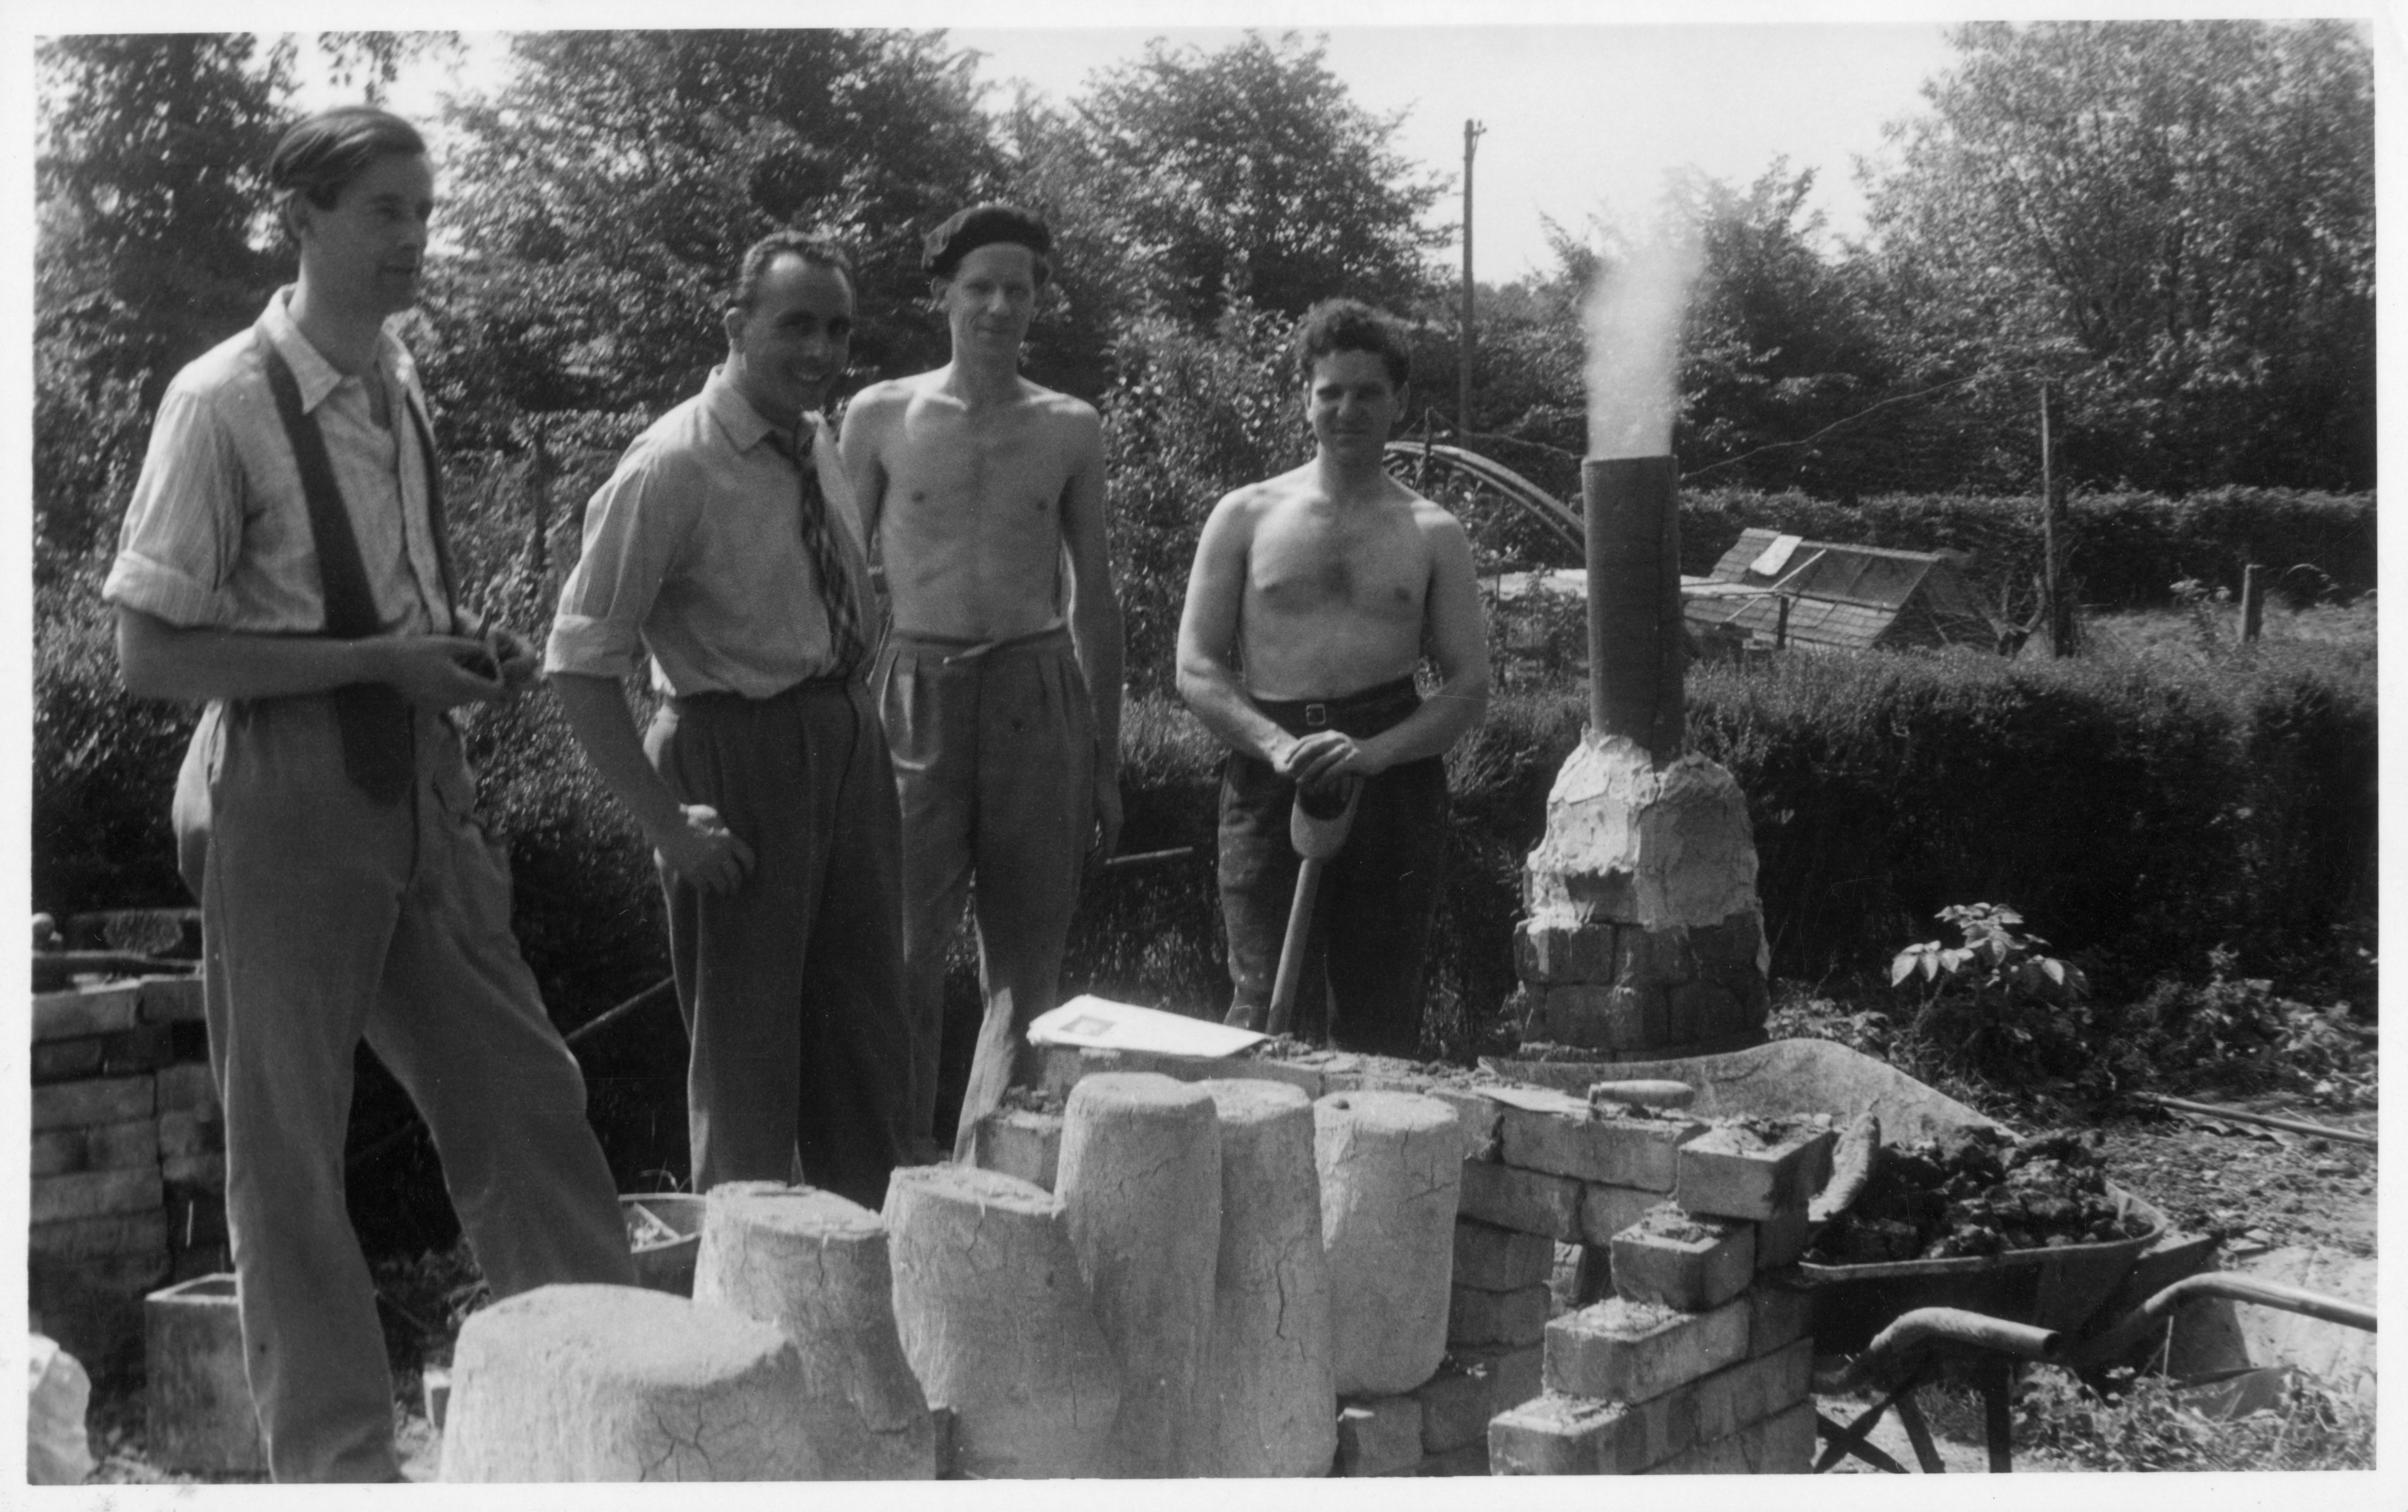 Henry Moore's assistants Oliffe Richmond, Alan Ingham, and Anthony Caro with the homemade Foundry in the garden of Hoglands, c.1950